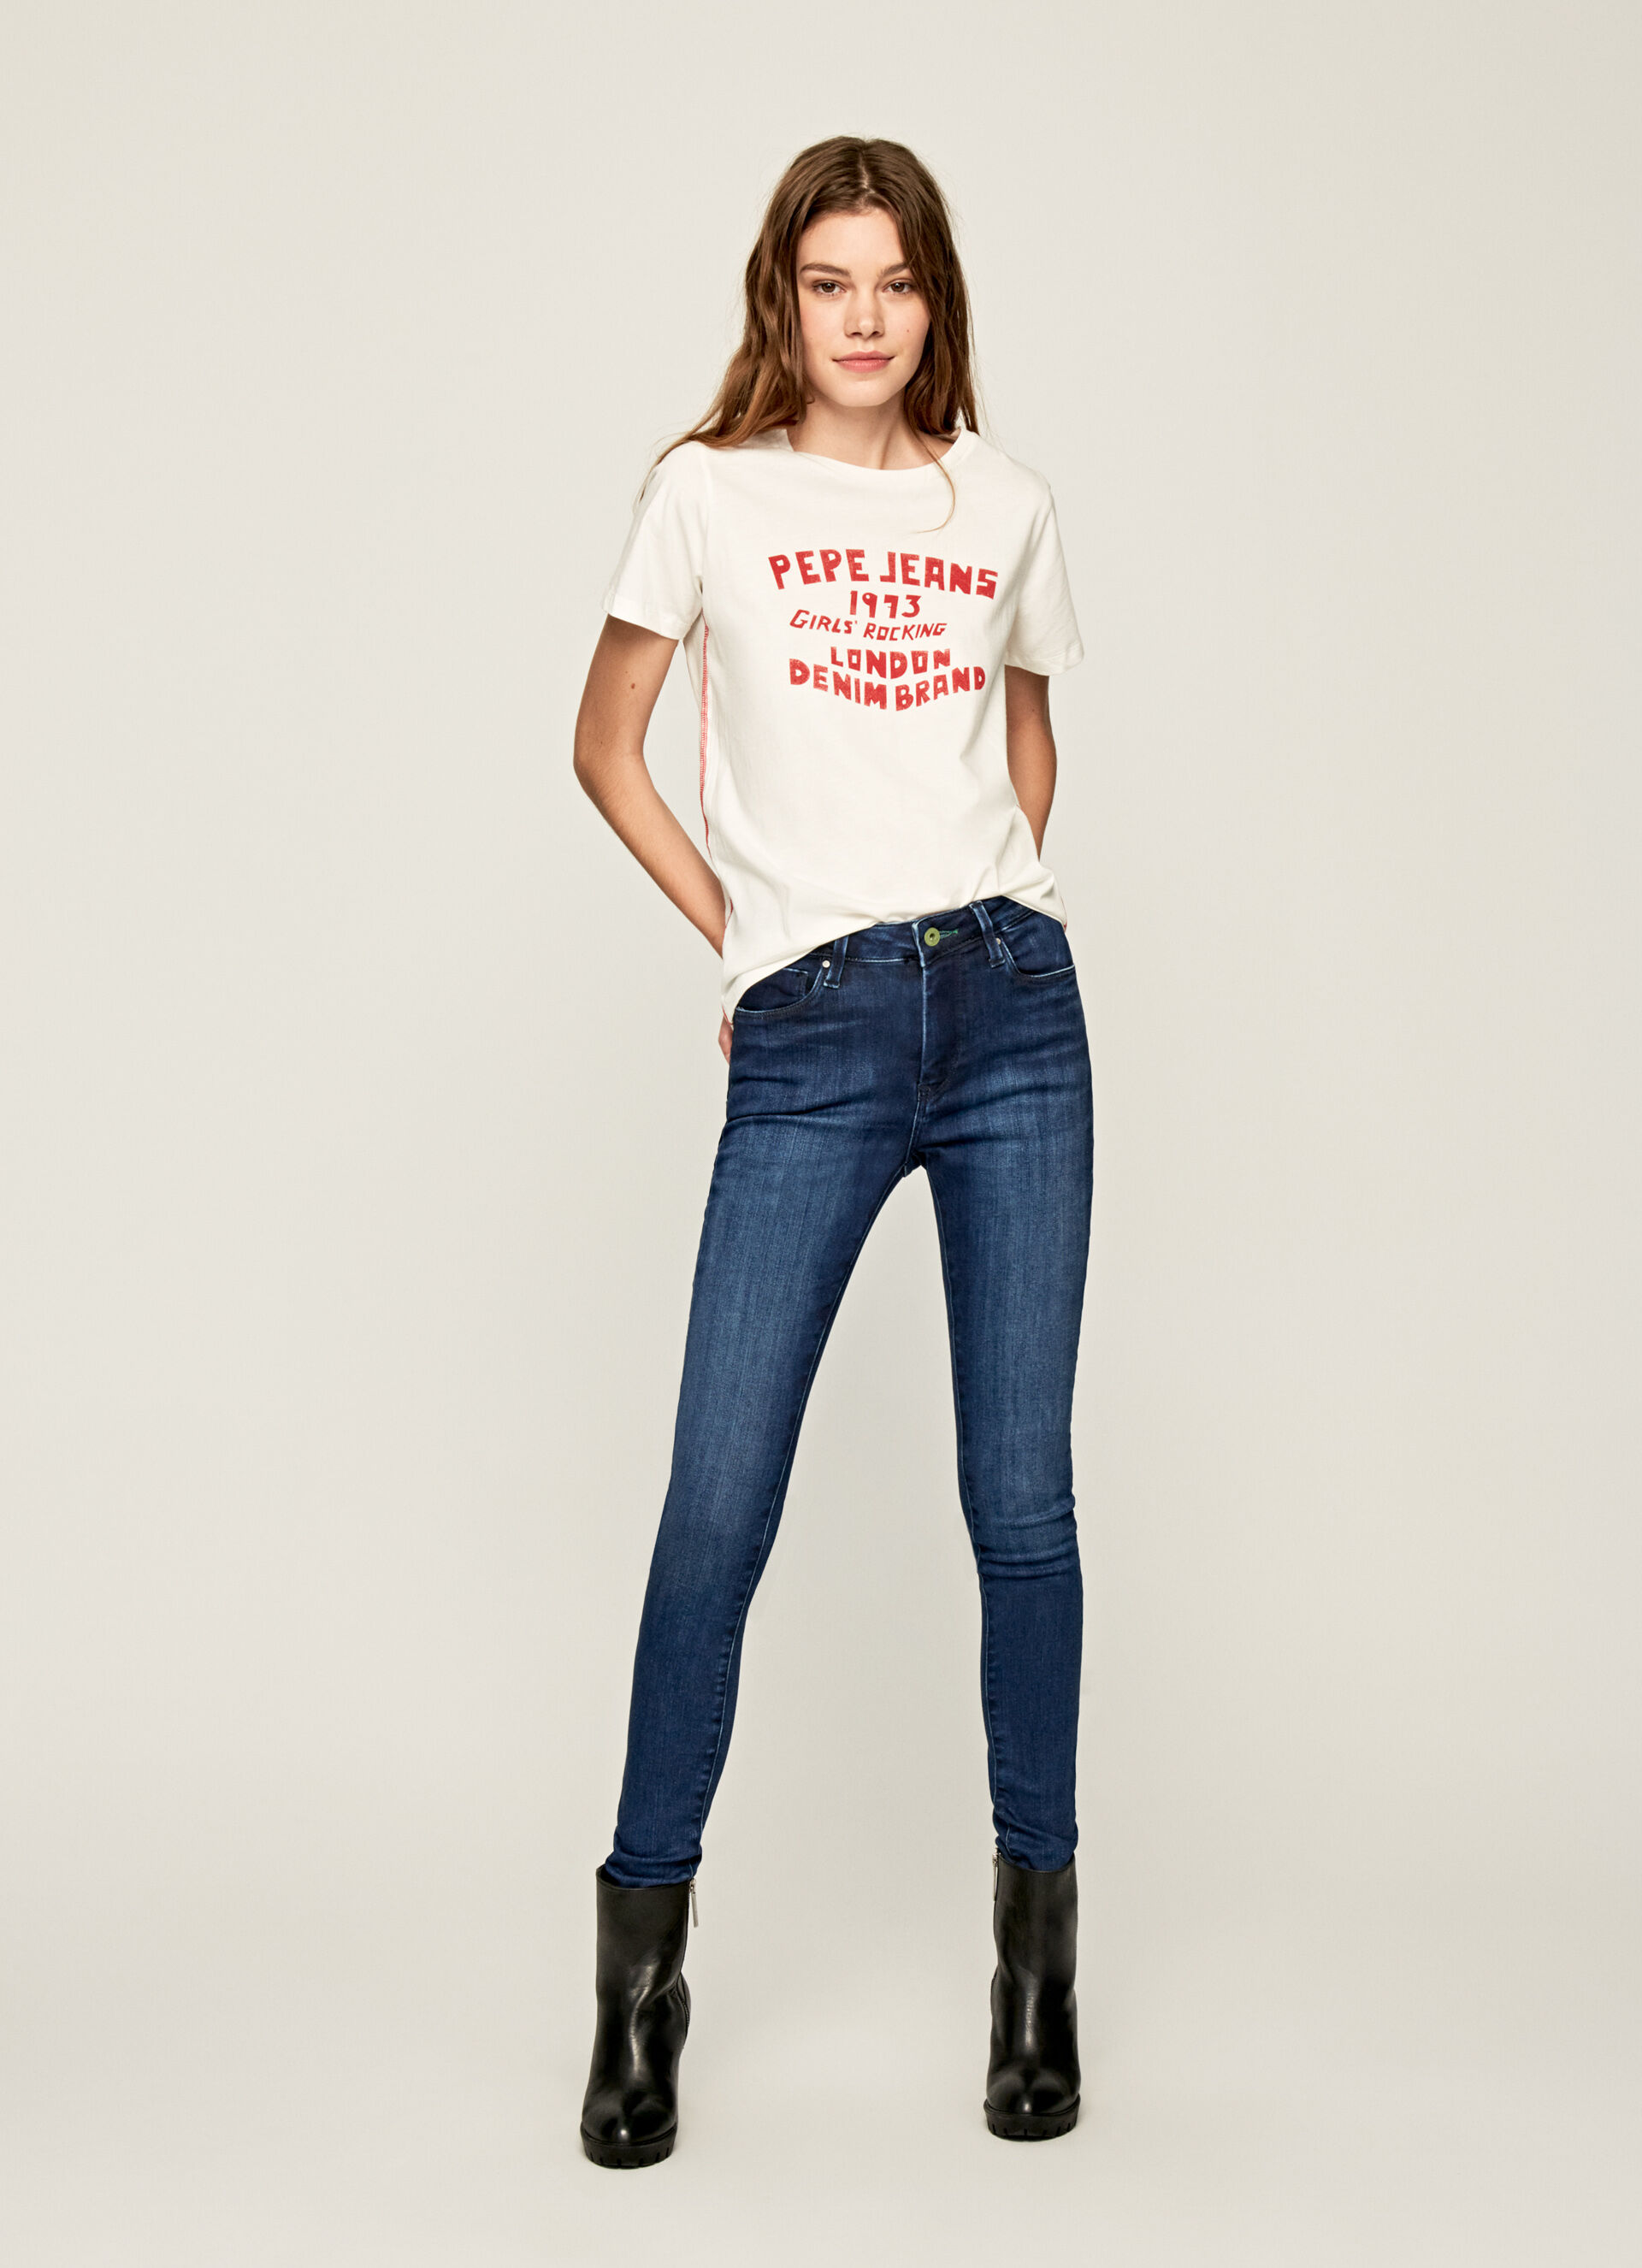 Pepe Jeans London Official Website